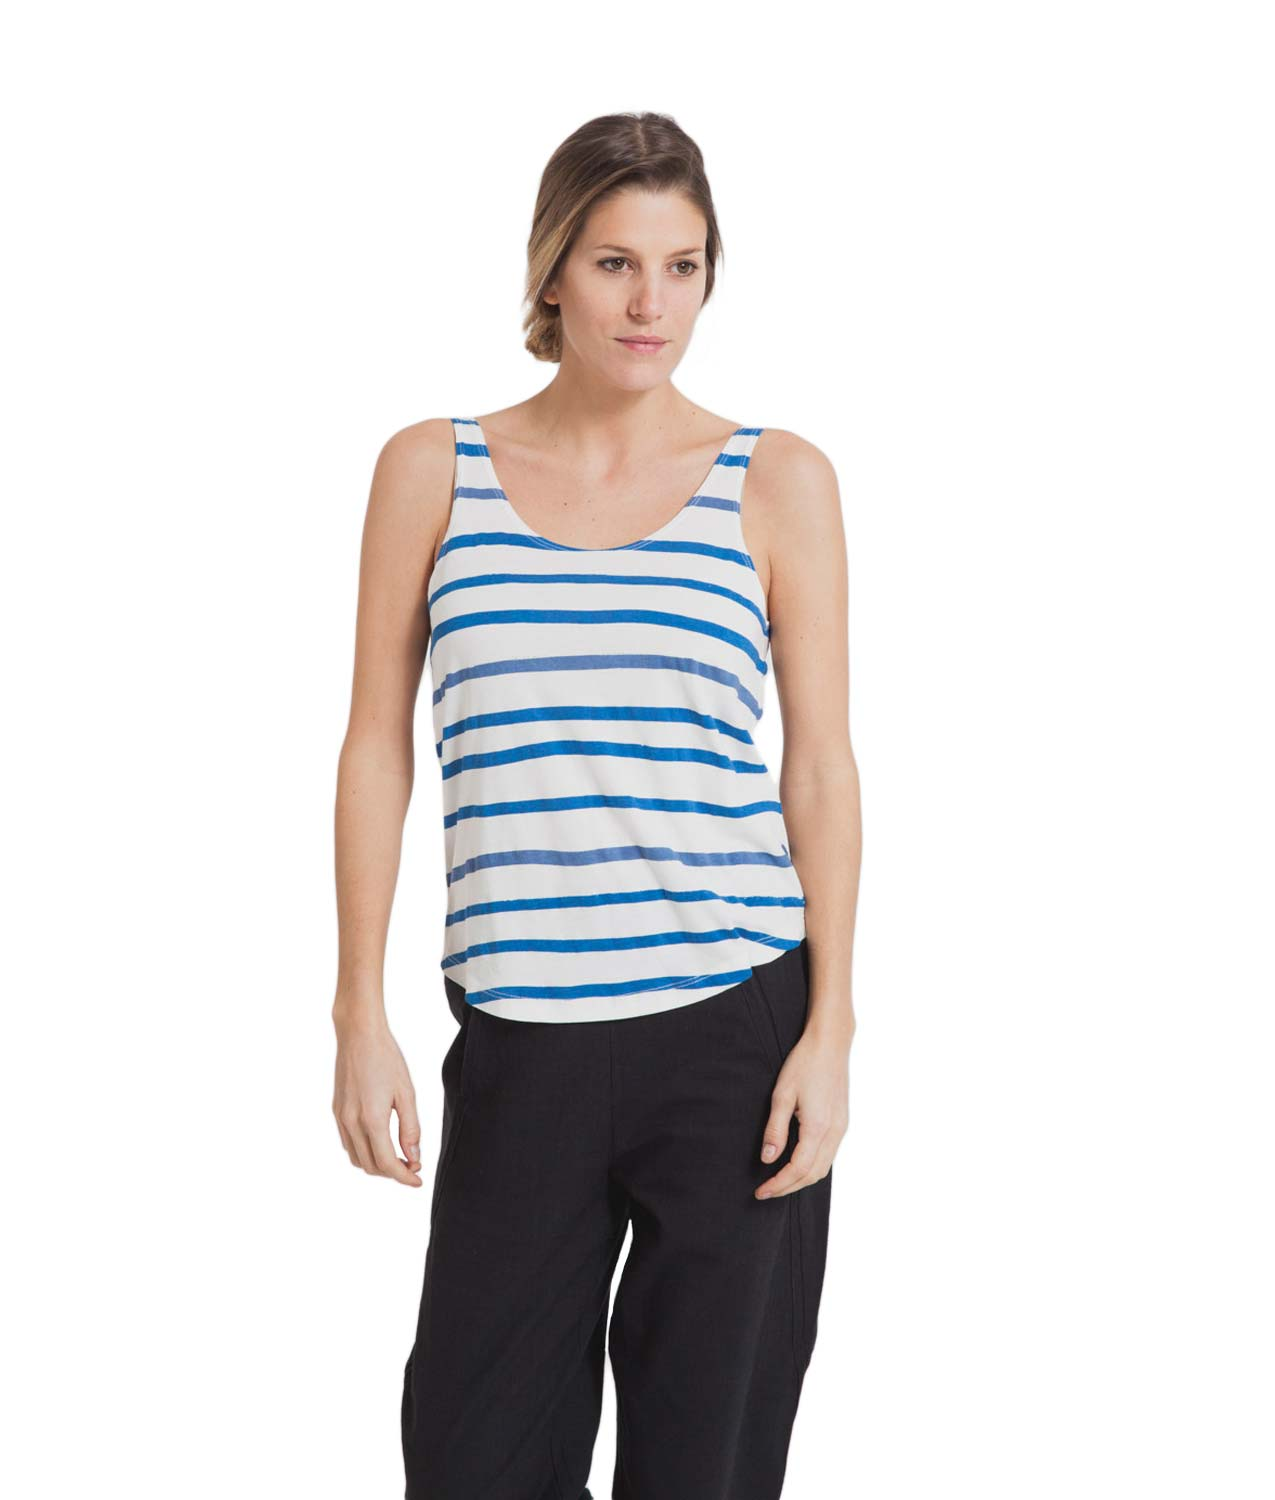 Camiseta Aquarela Stripes